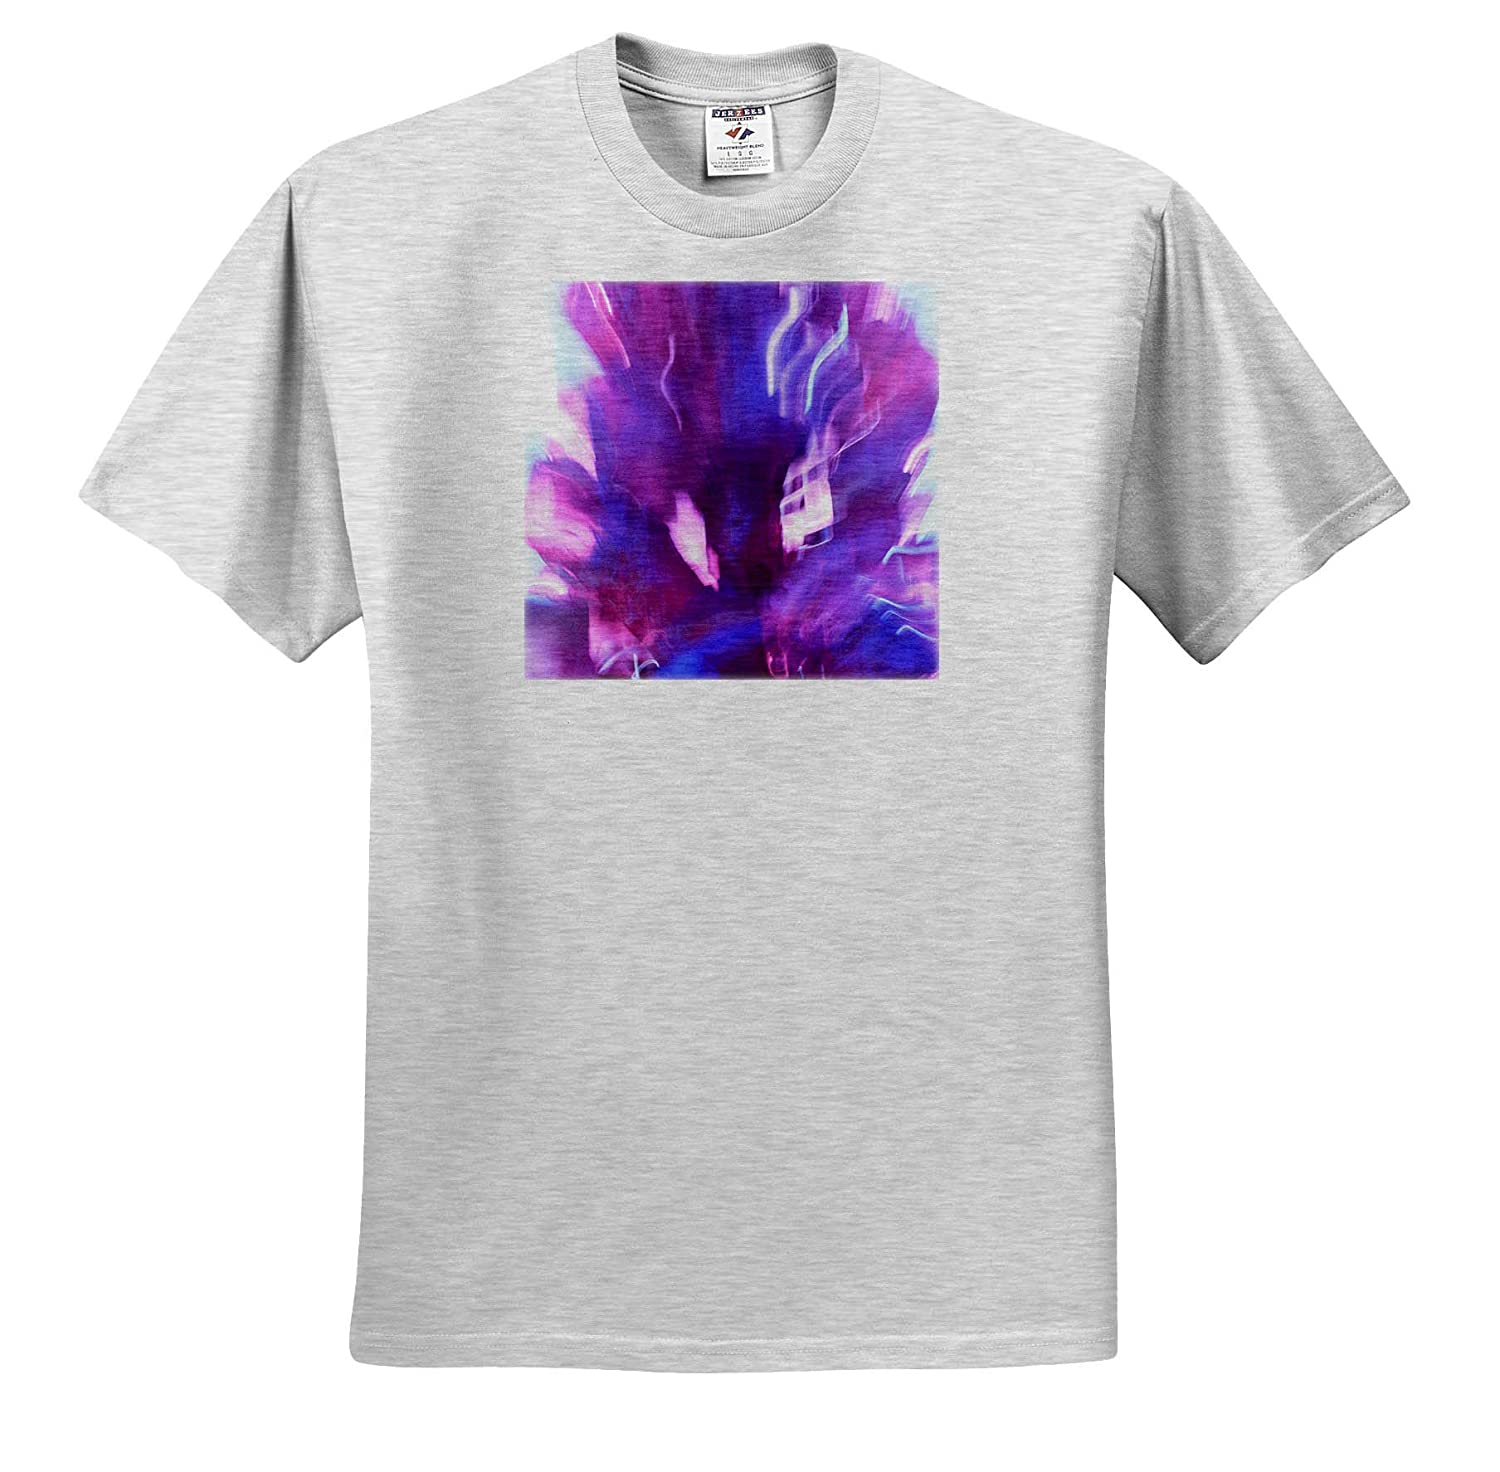 Abstracts Colorful Glass with Blurred Motion - Adult T-Shirt XL 3dRose Danita Delimont ts/_315180